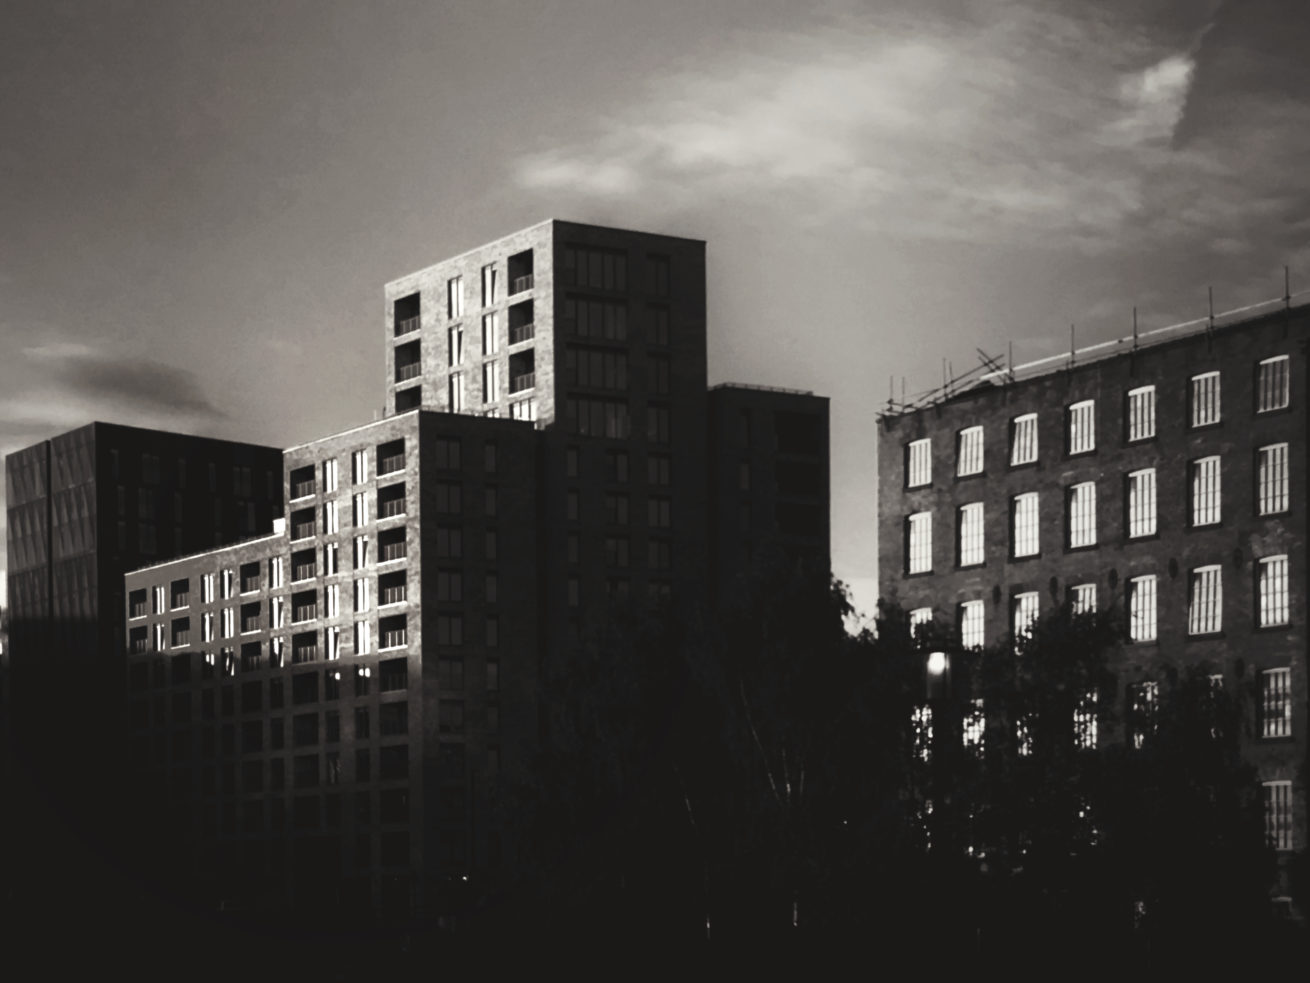 NORTHERN QUARTER AT DUSK